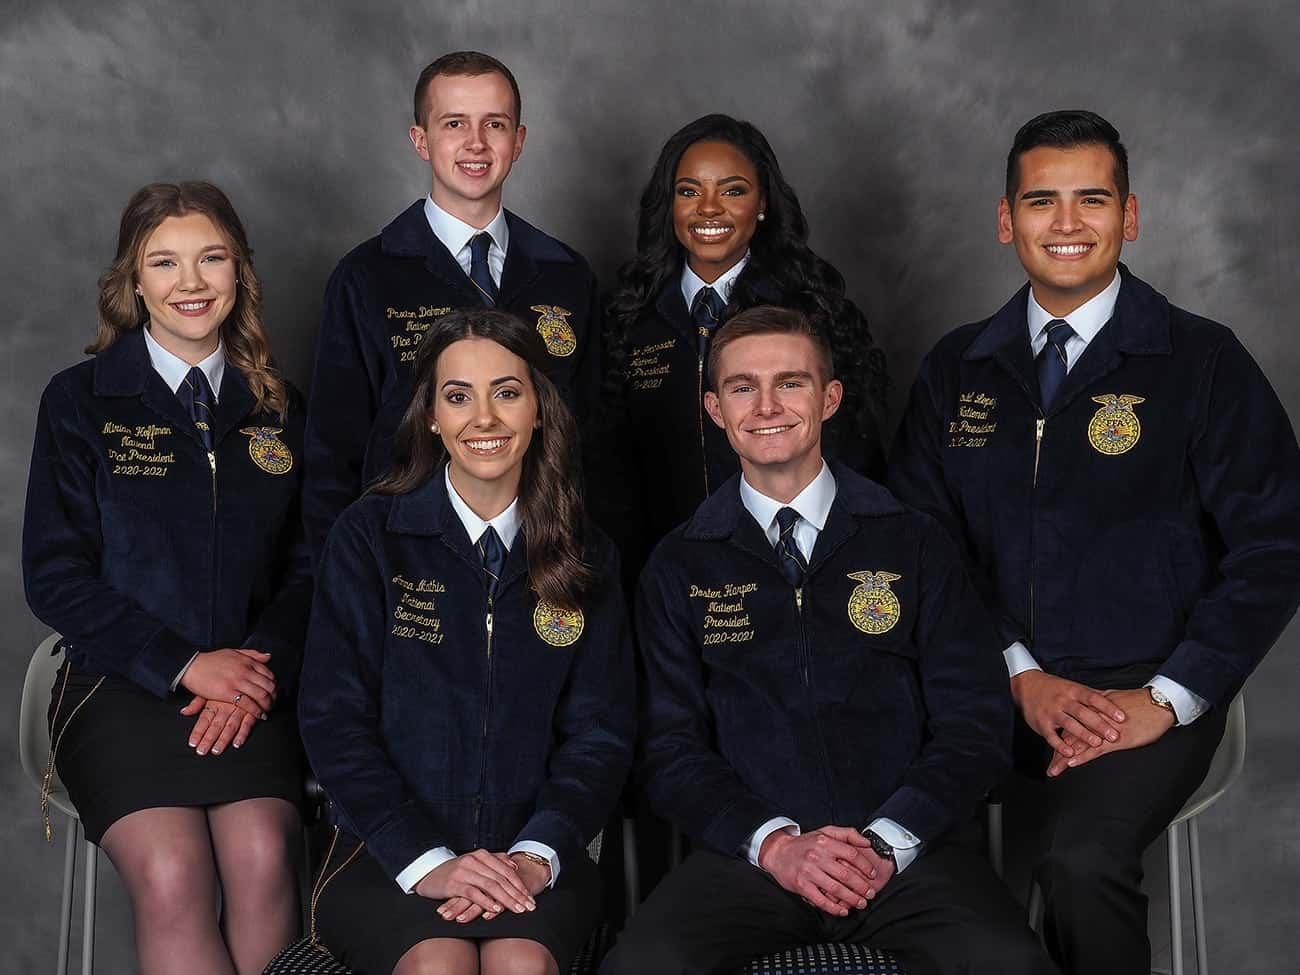 Portrait of 2019-20 National FFA Officer Team